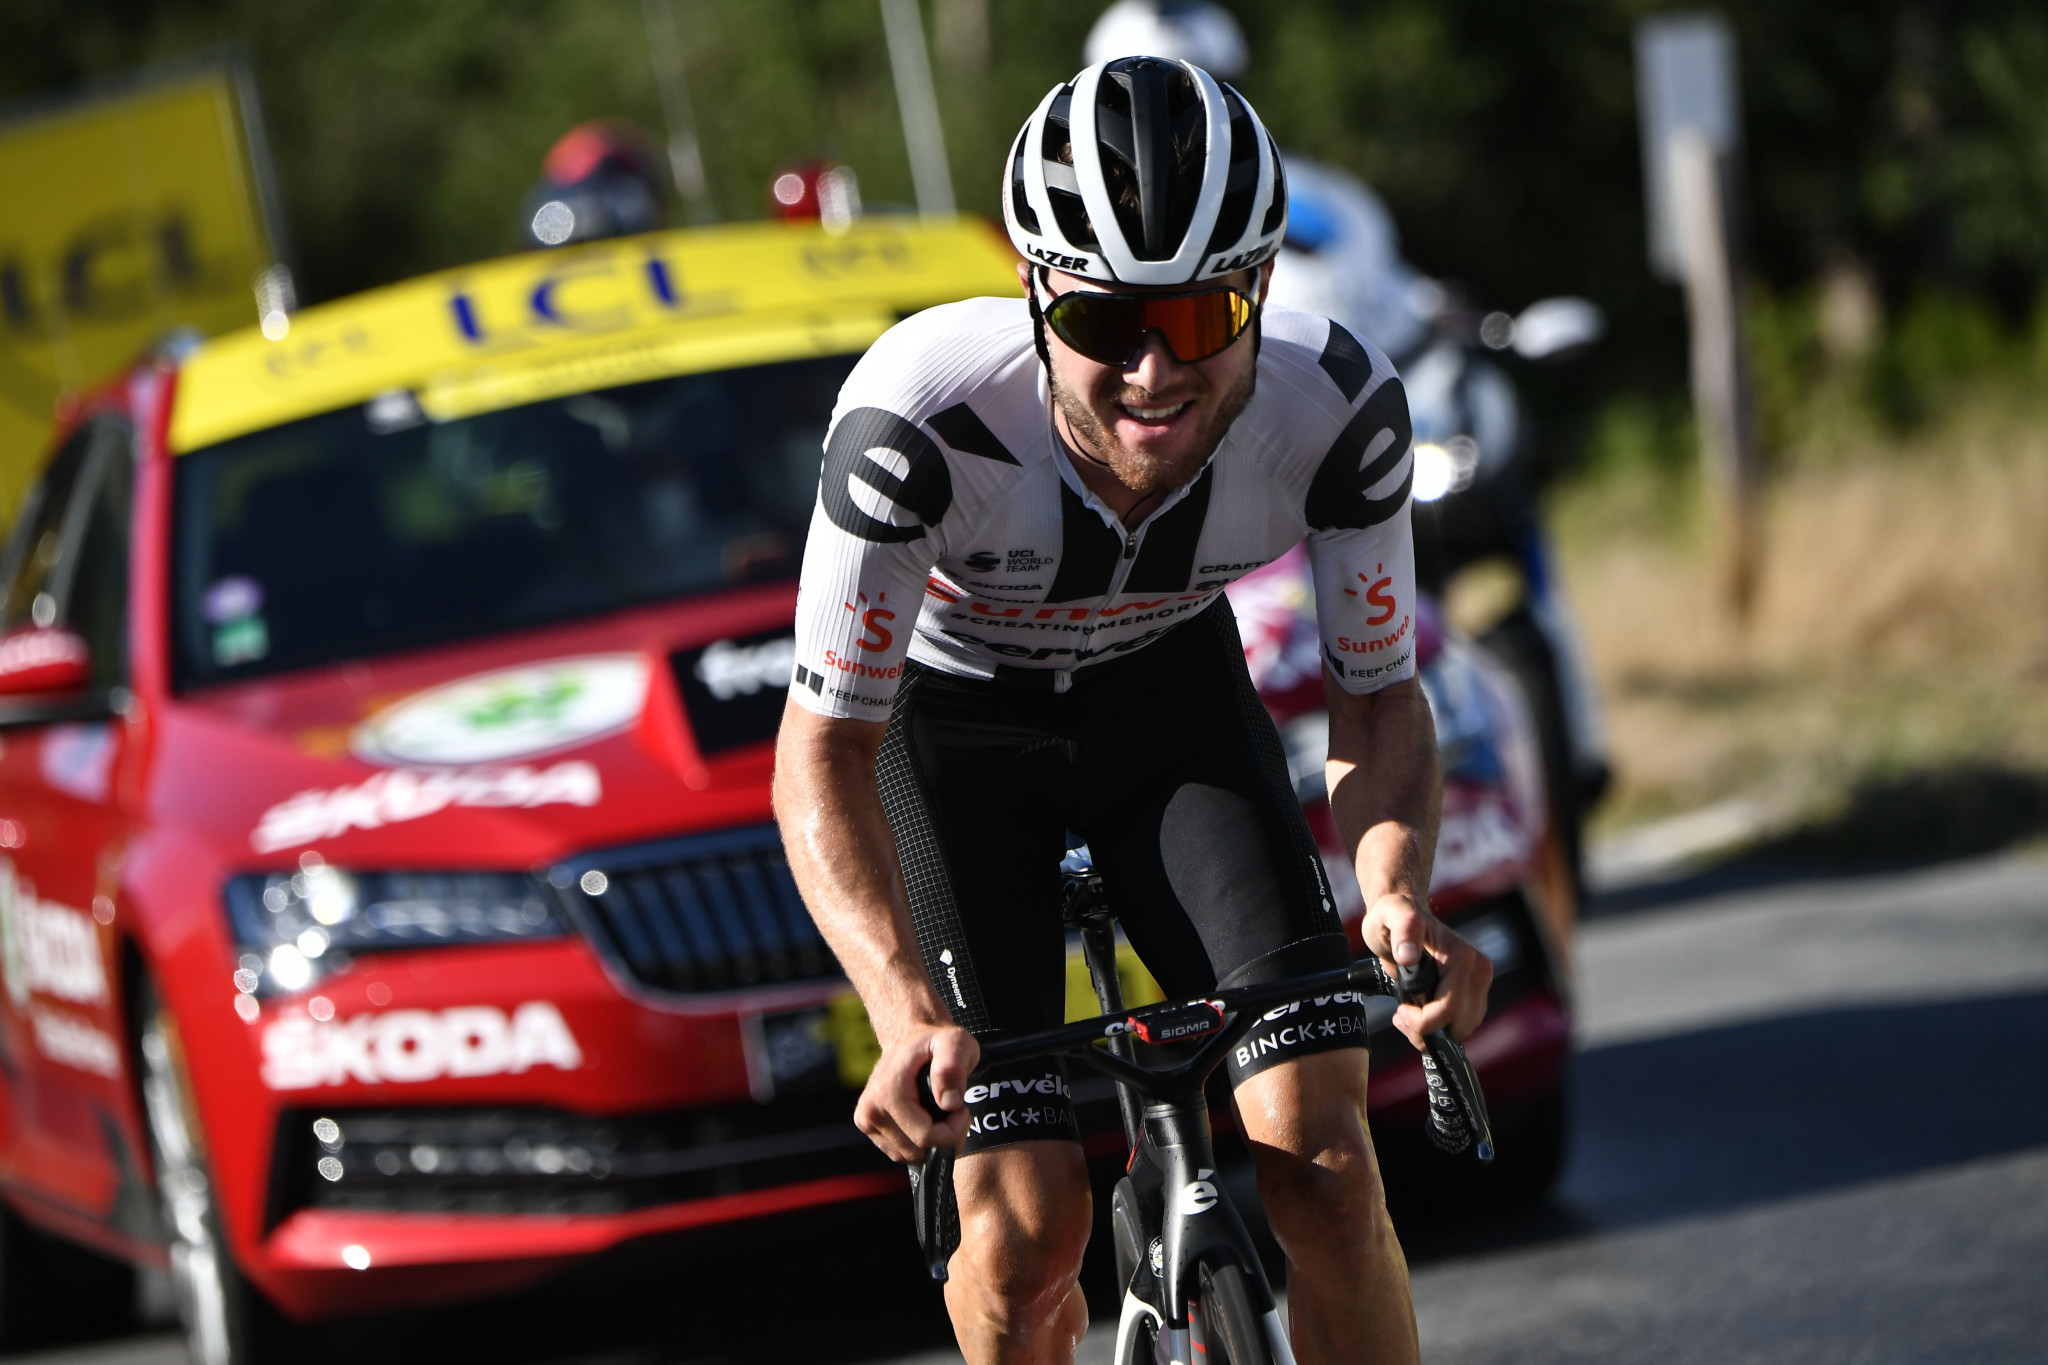 Defending champion Hirschi to face team mate Pogačar at La Flèche Wallonne